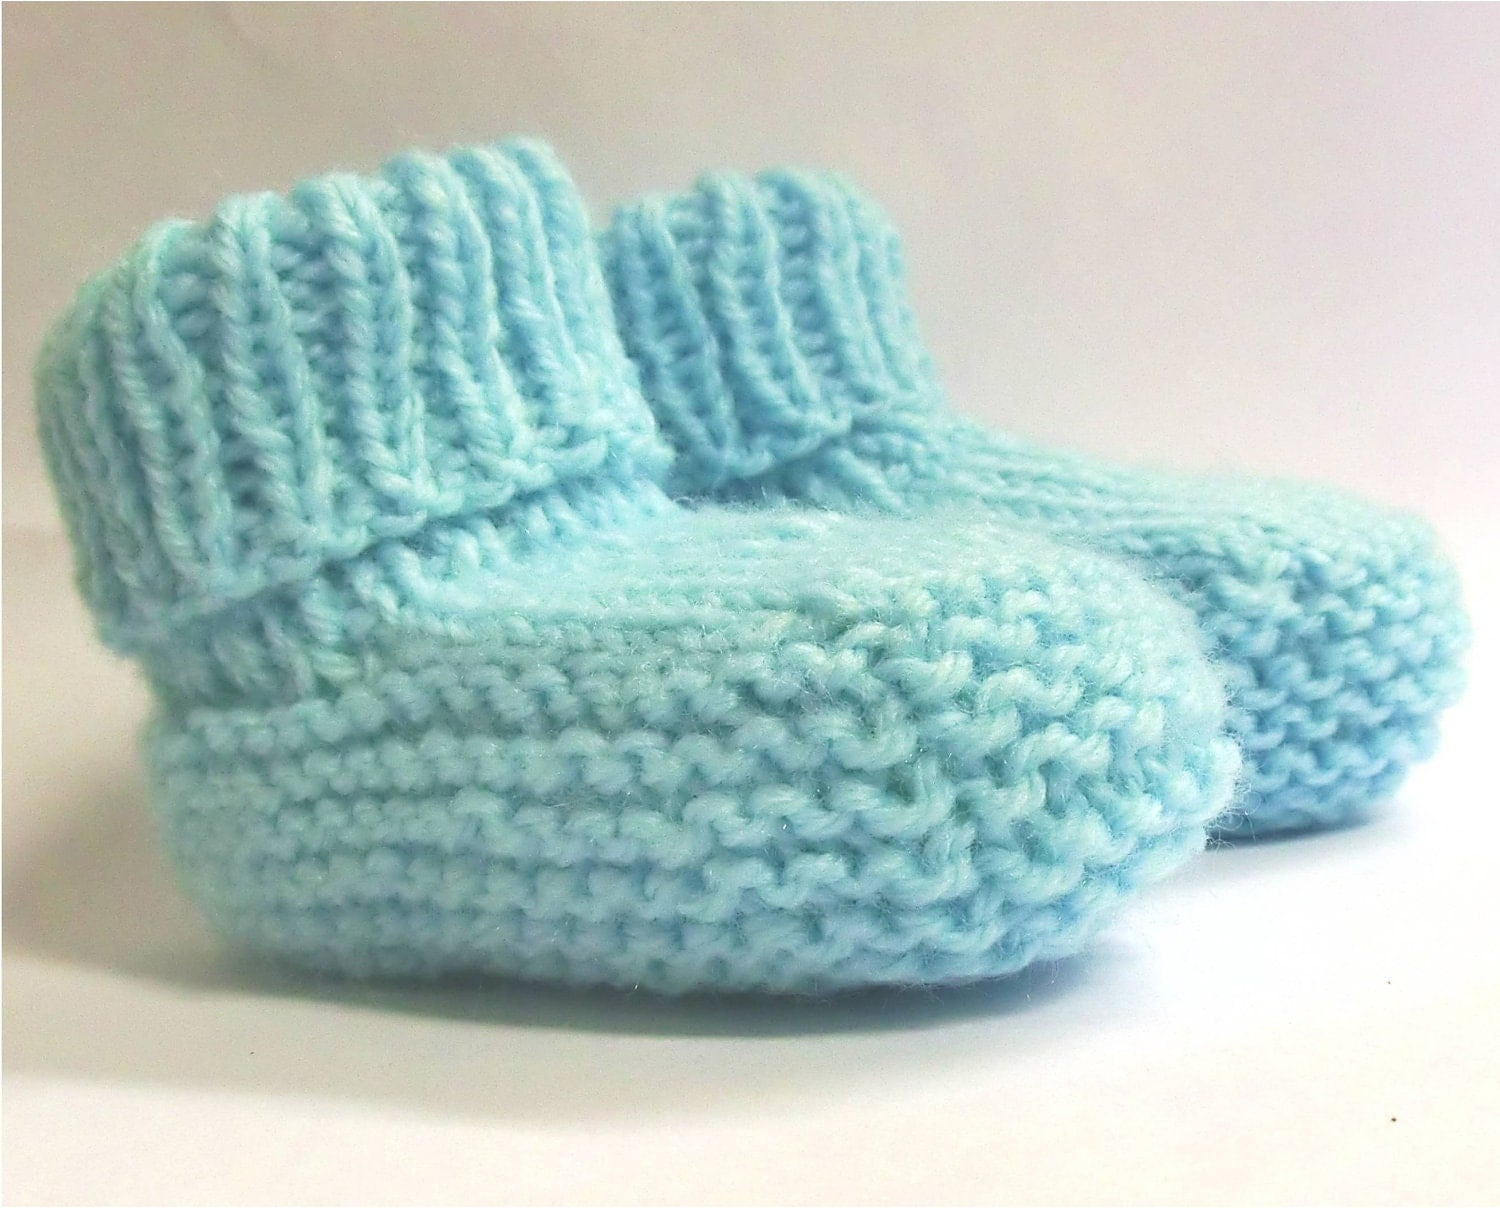 Knitting Patterns For Booties Free : Baby Booties Knitting Pattern PDF Instant Download